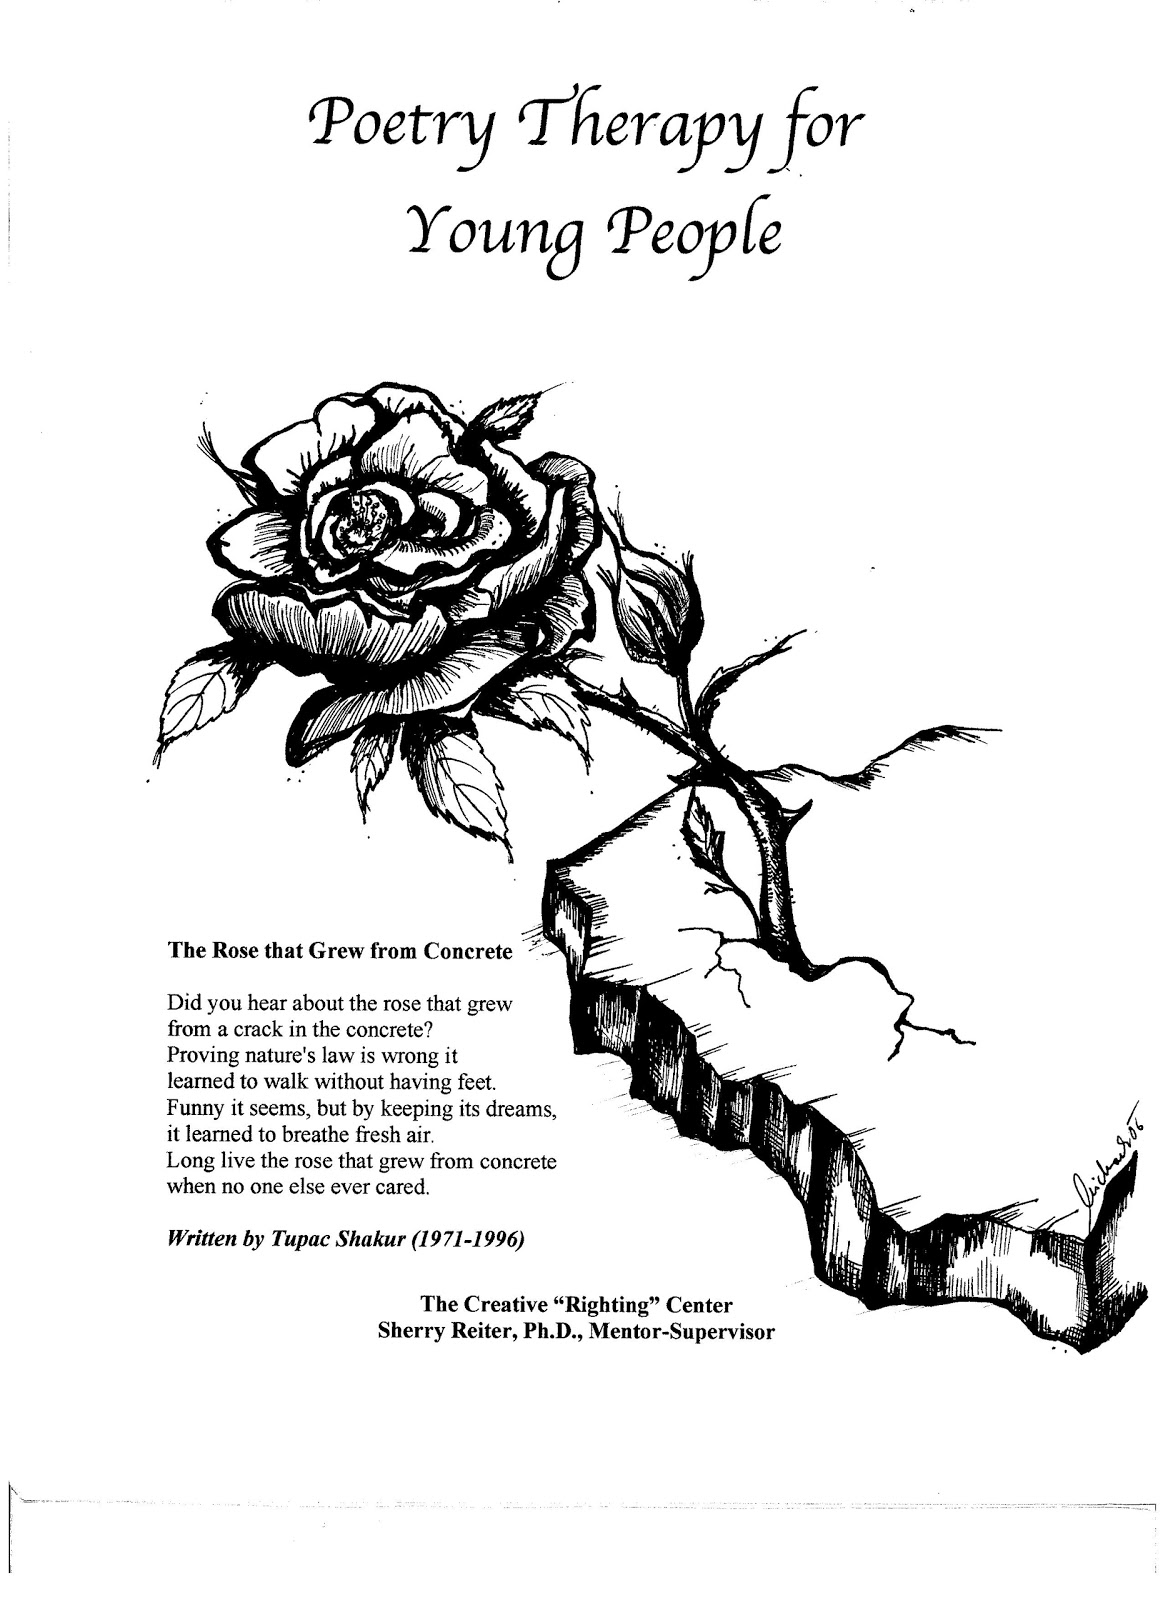 """an analysis of tupac shakurs the rose that grew from concrete And analysis of relevant content image of a rose growing from concrete an example of """"the rose that grew from concrete,"""" tupac shakur uses the image."""